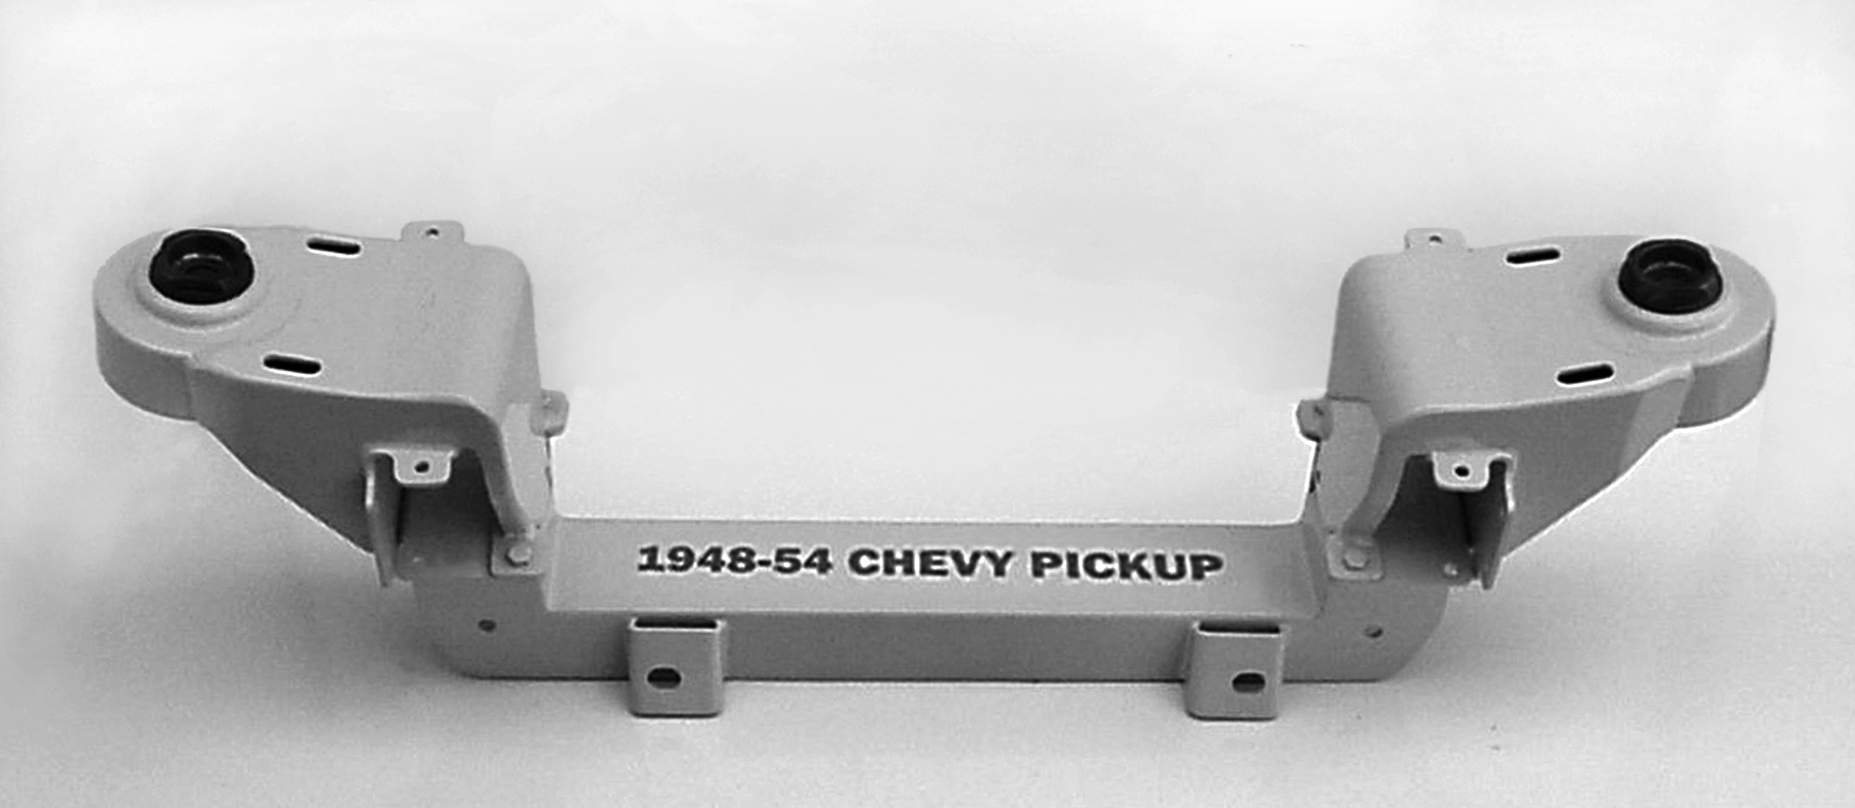 Chassis Engineering Blog Archive 1948 1954 Chevy Gmc Bolt On Pinto 2 Ton Truck If 4854cpt Mustang Ii Ifs For